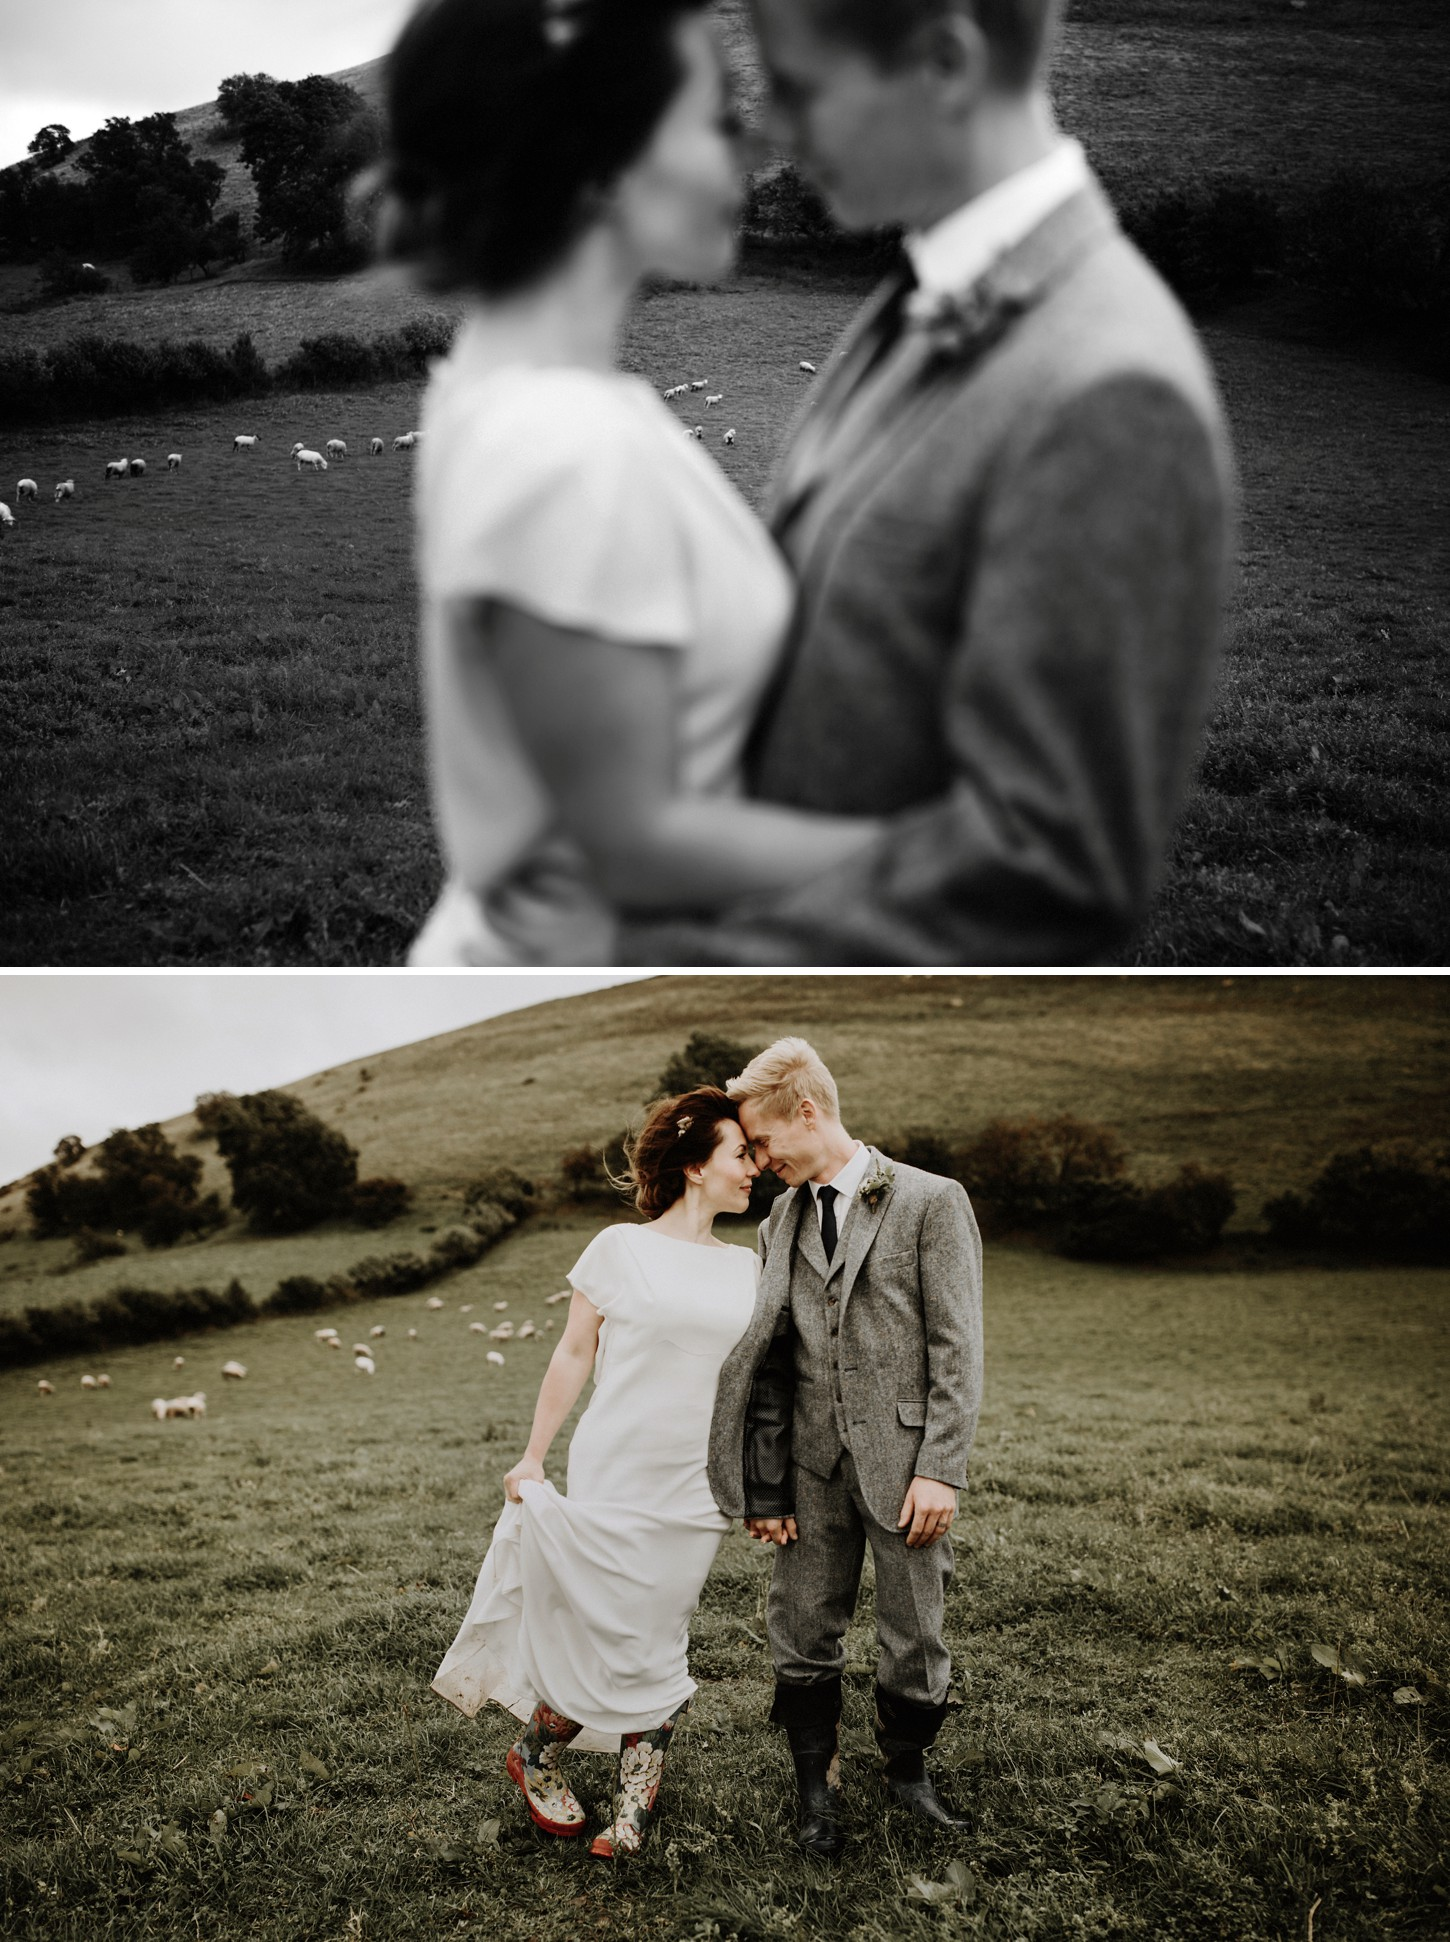 Dolau-Sheep-Farm-Wedding-Wales-United-Kingdom-046